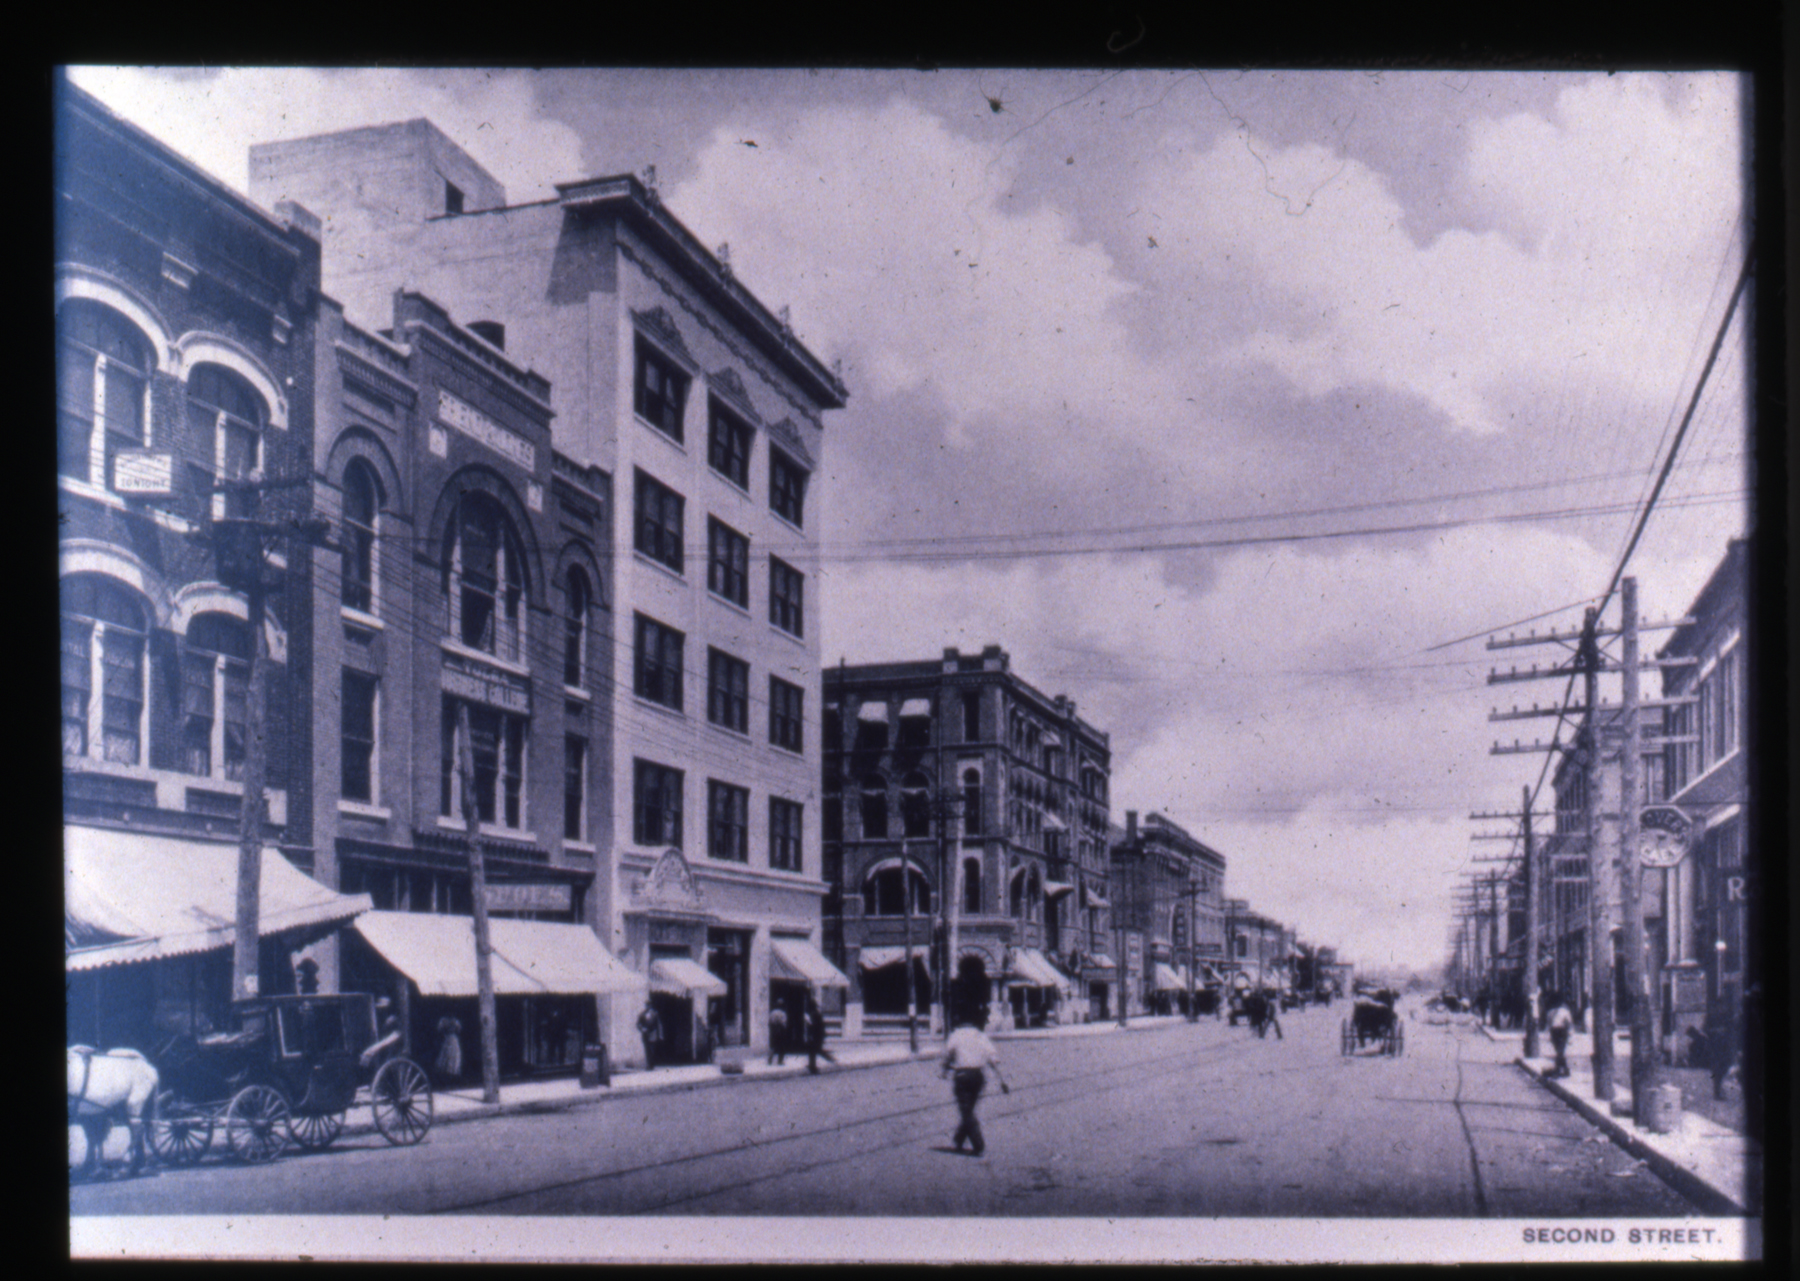 2nd Street, Looking East from Boulder, Undated